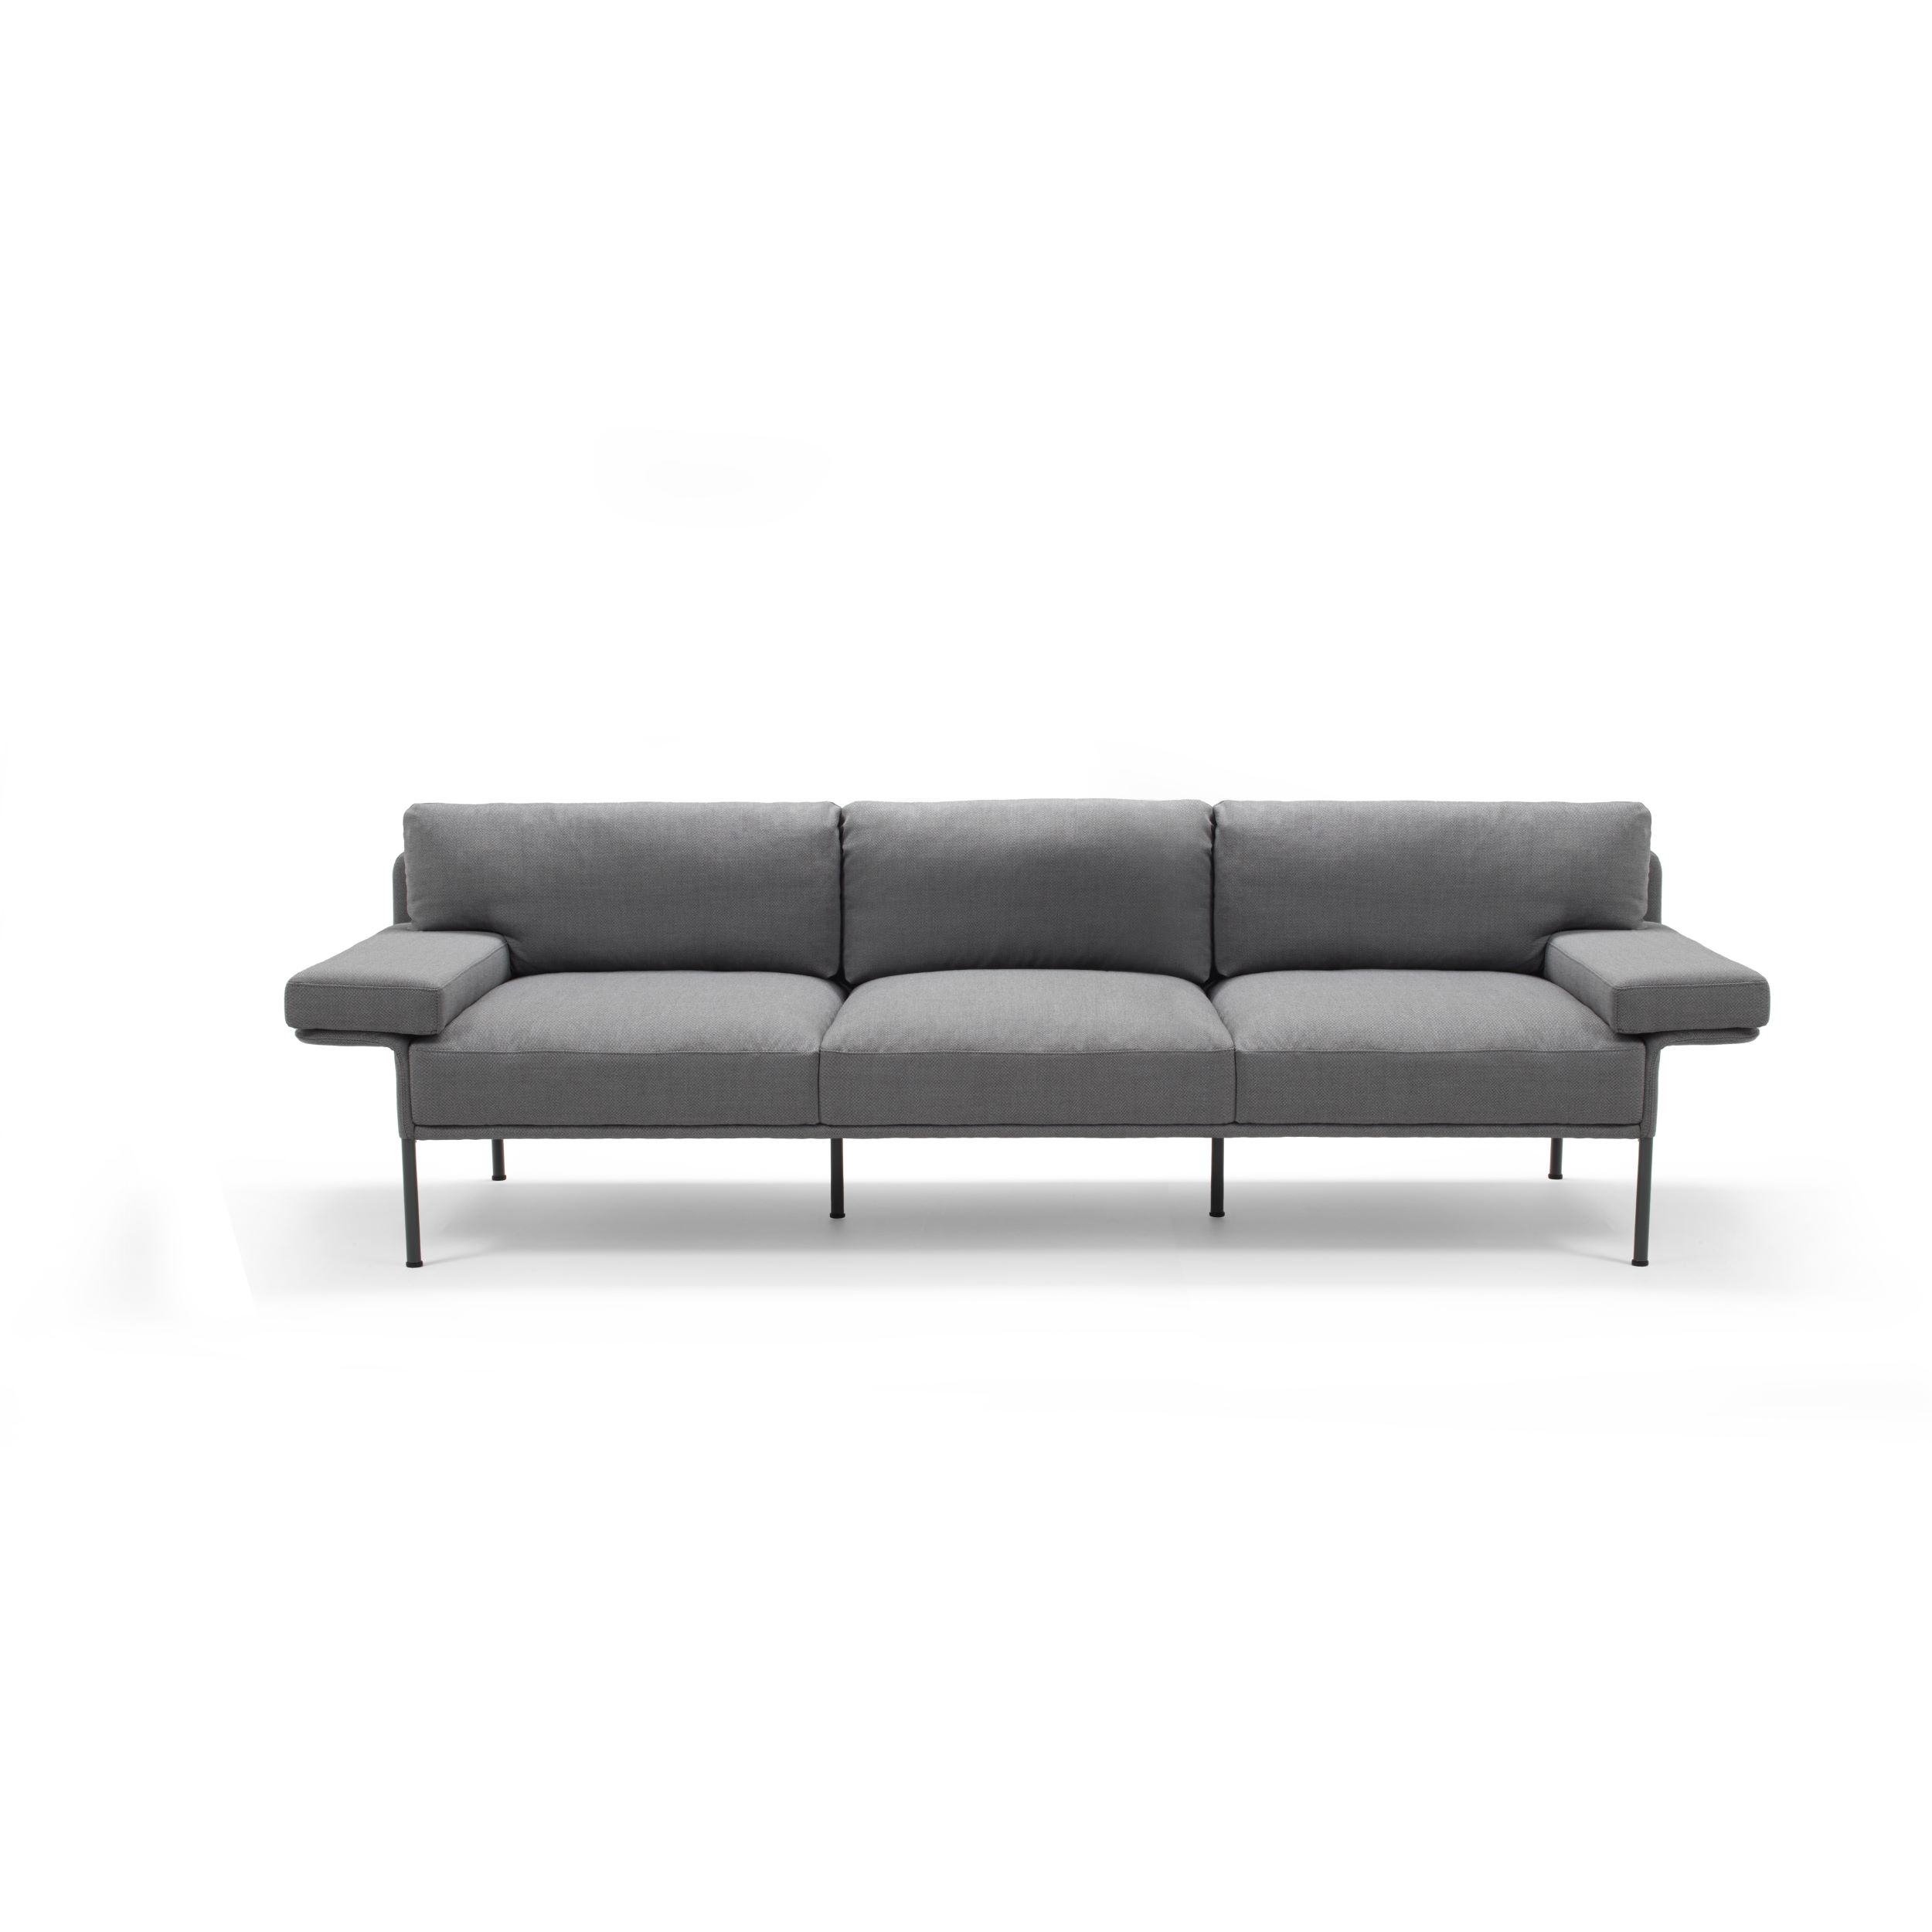 Varilounge Low 770 Dc Offecct